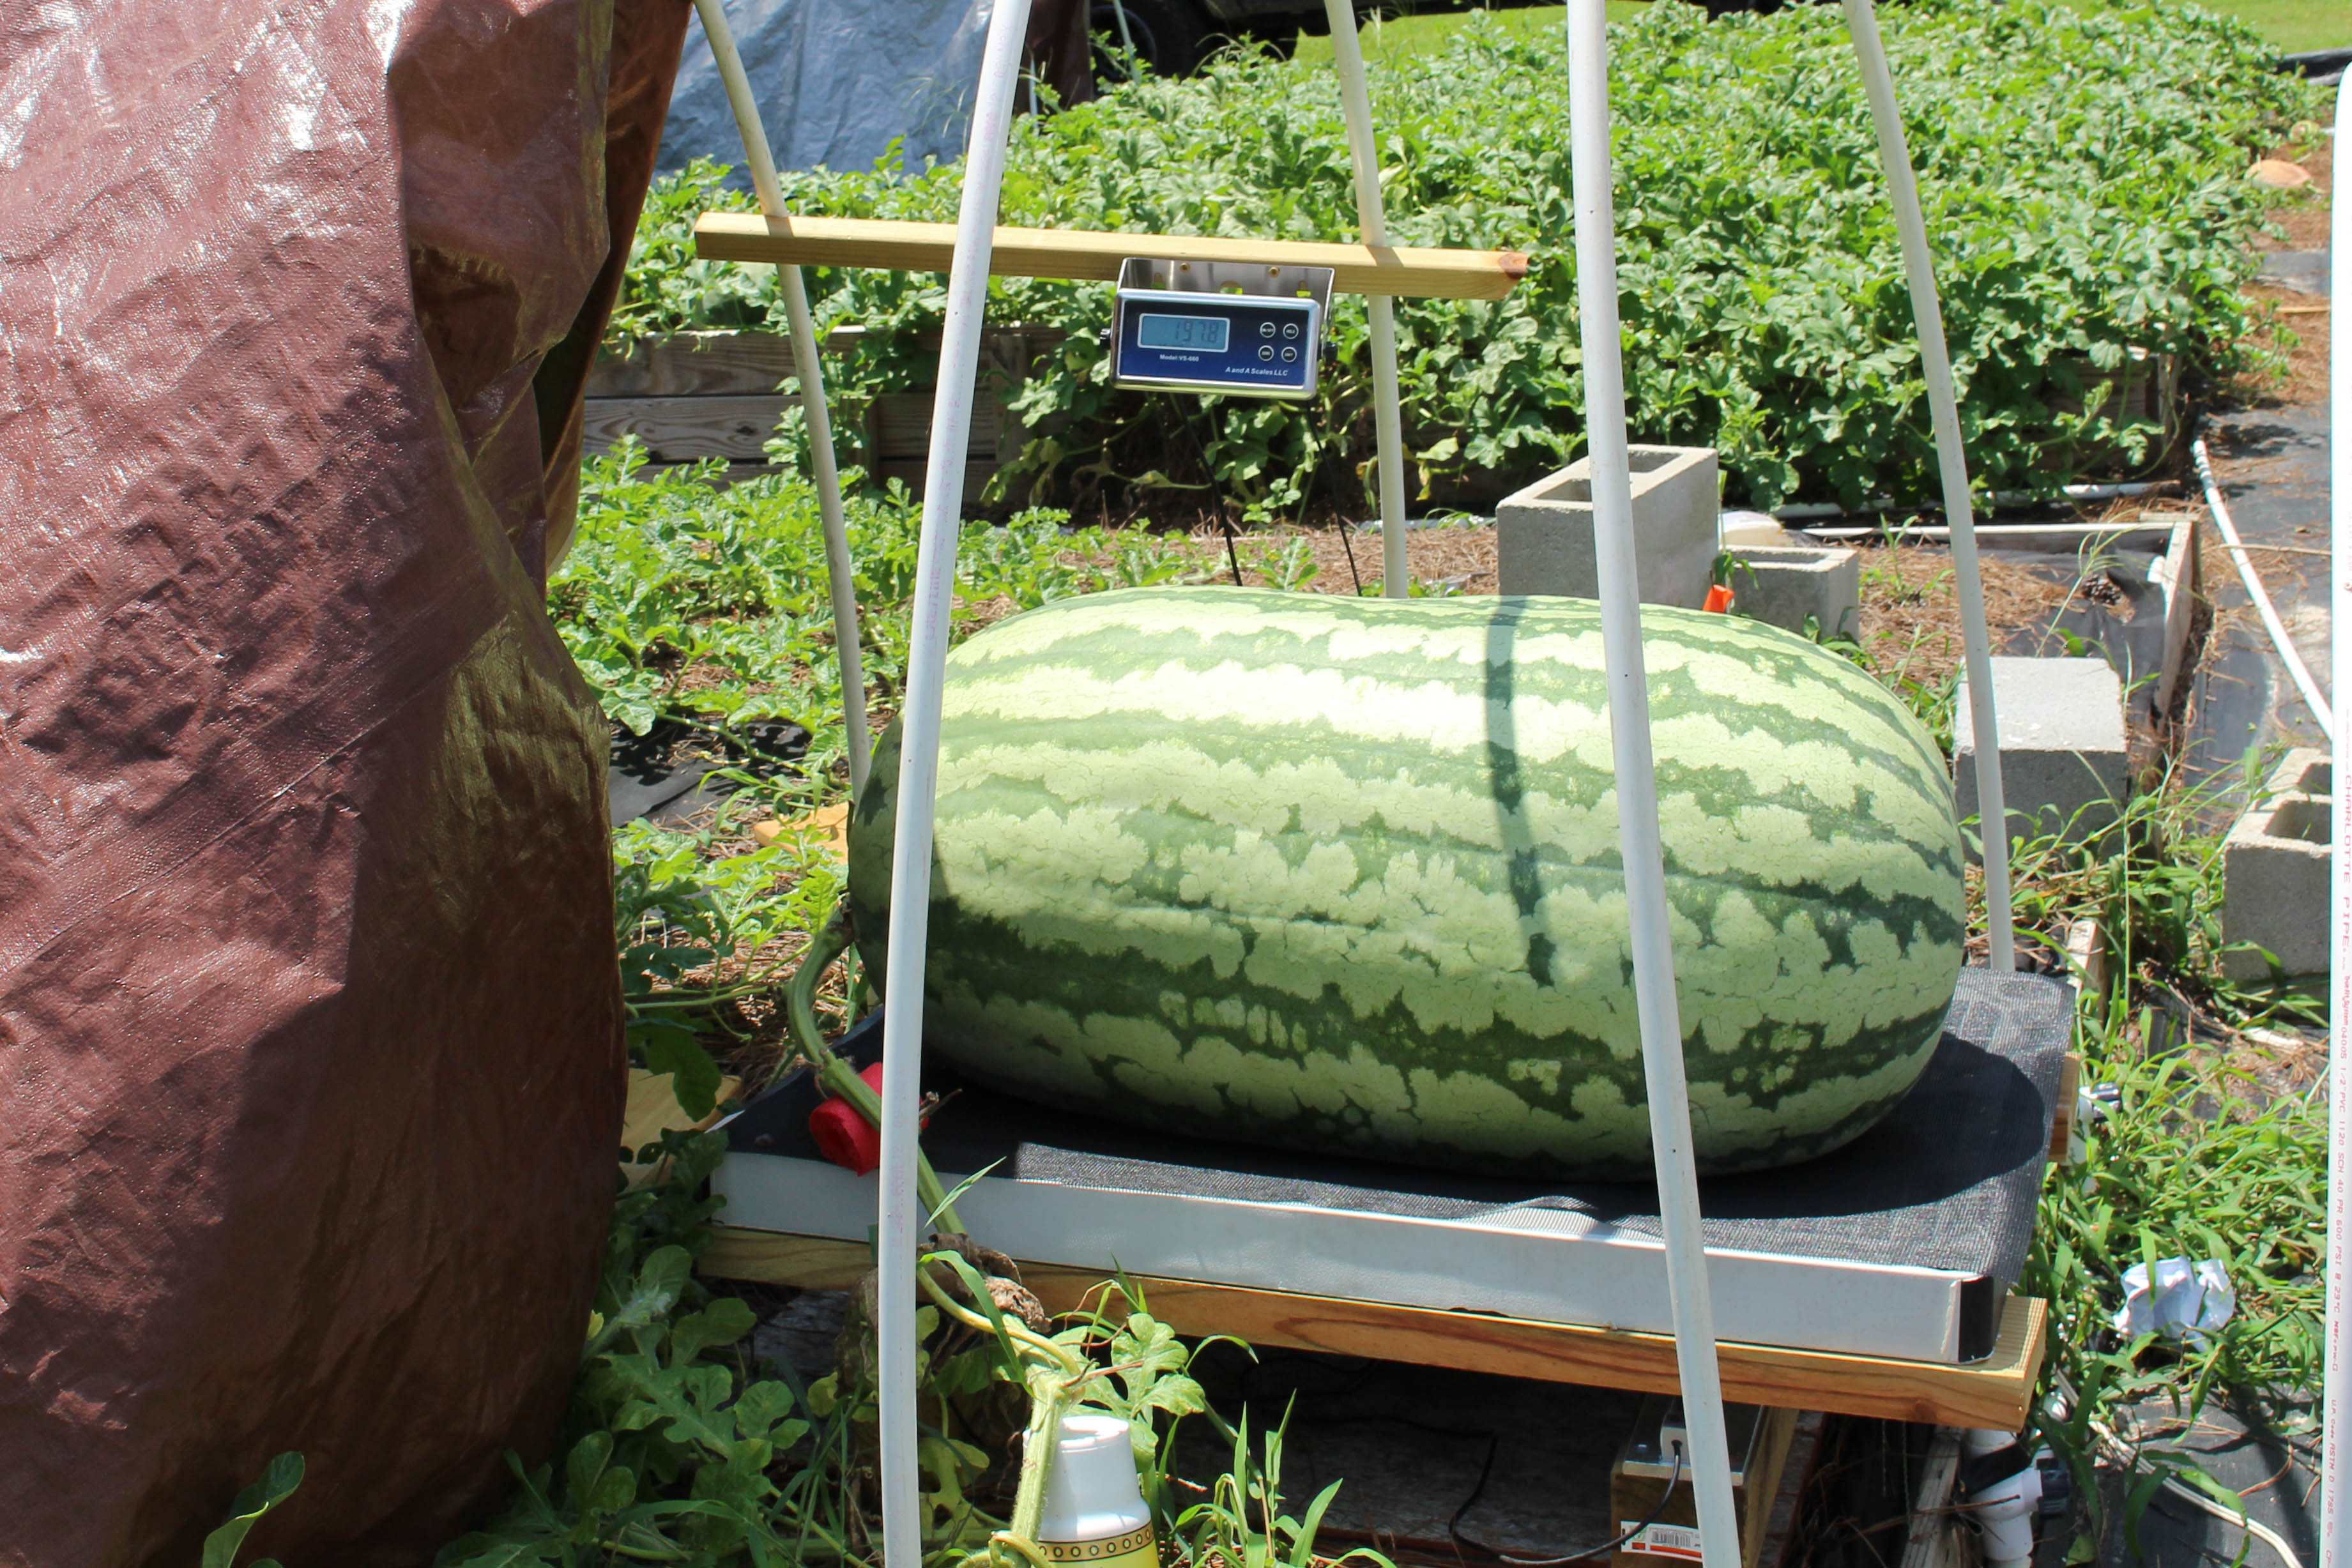 melon on scale